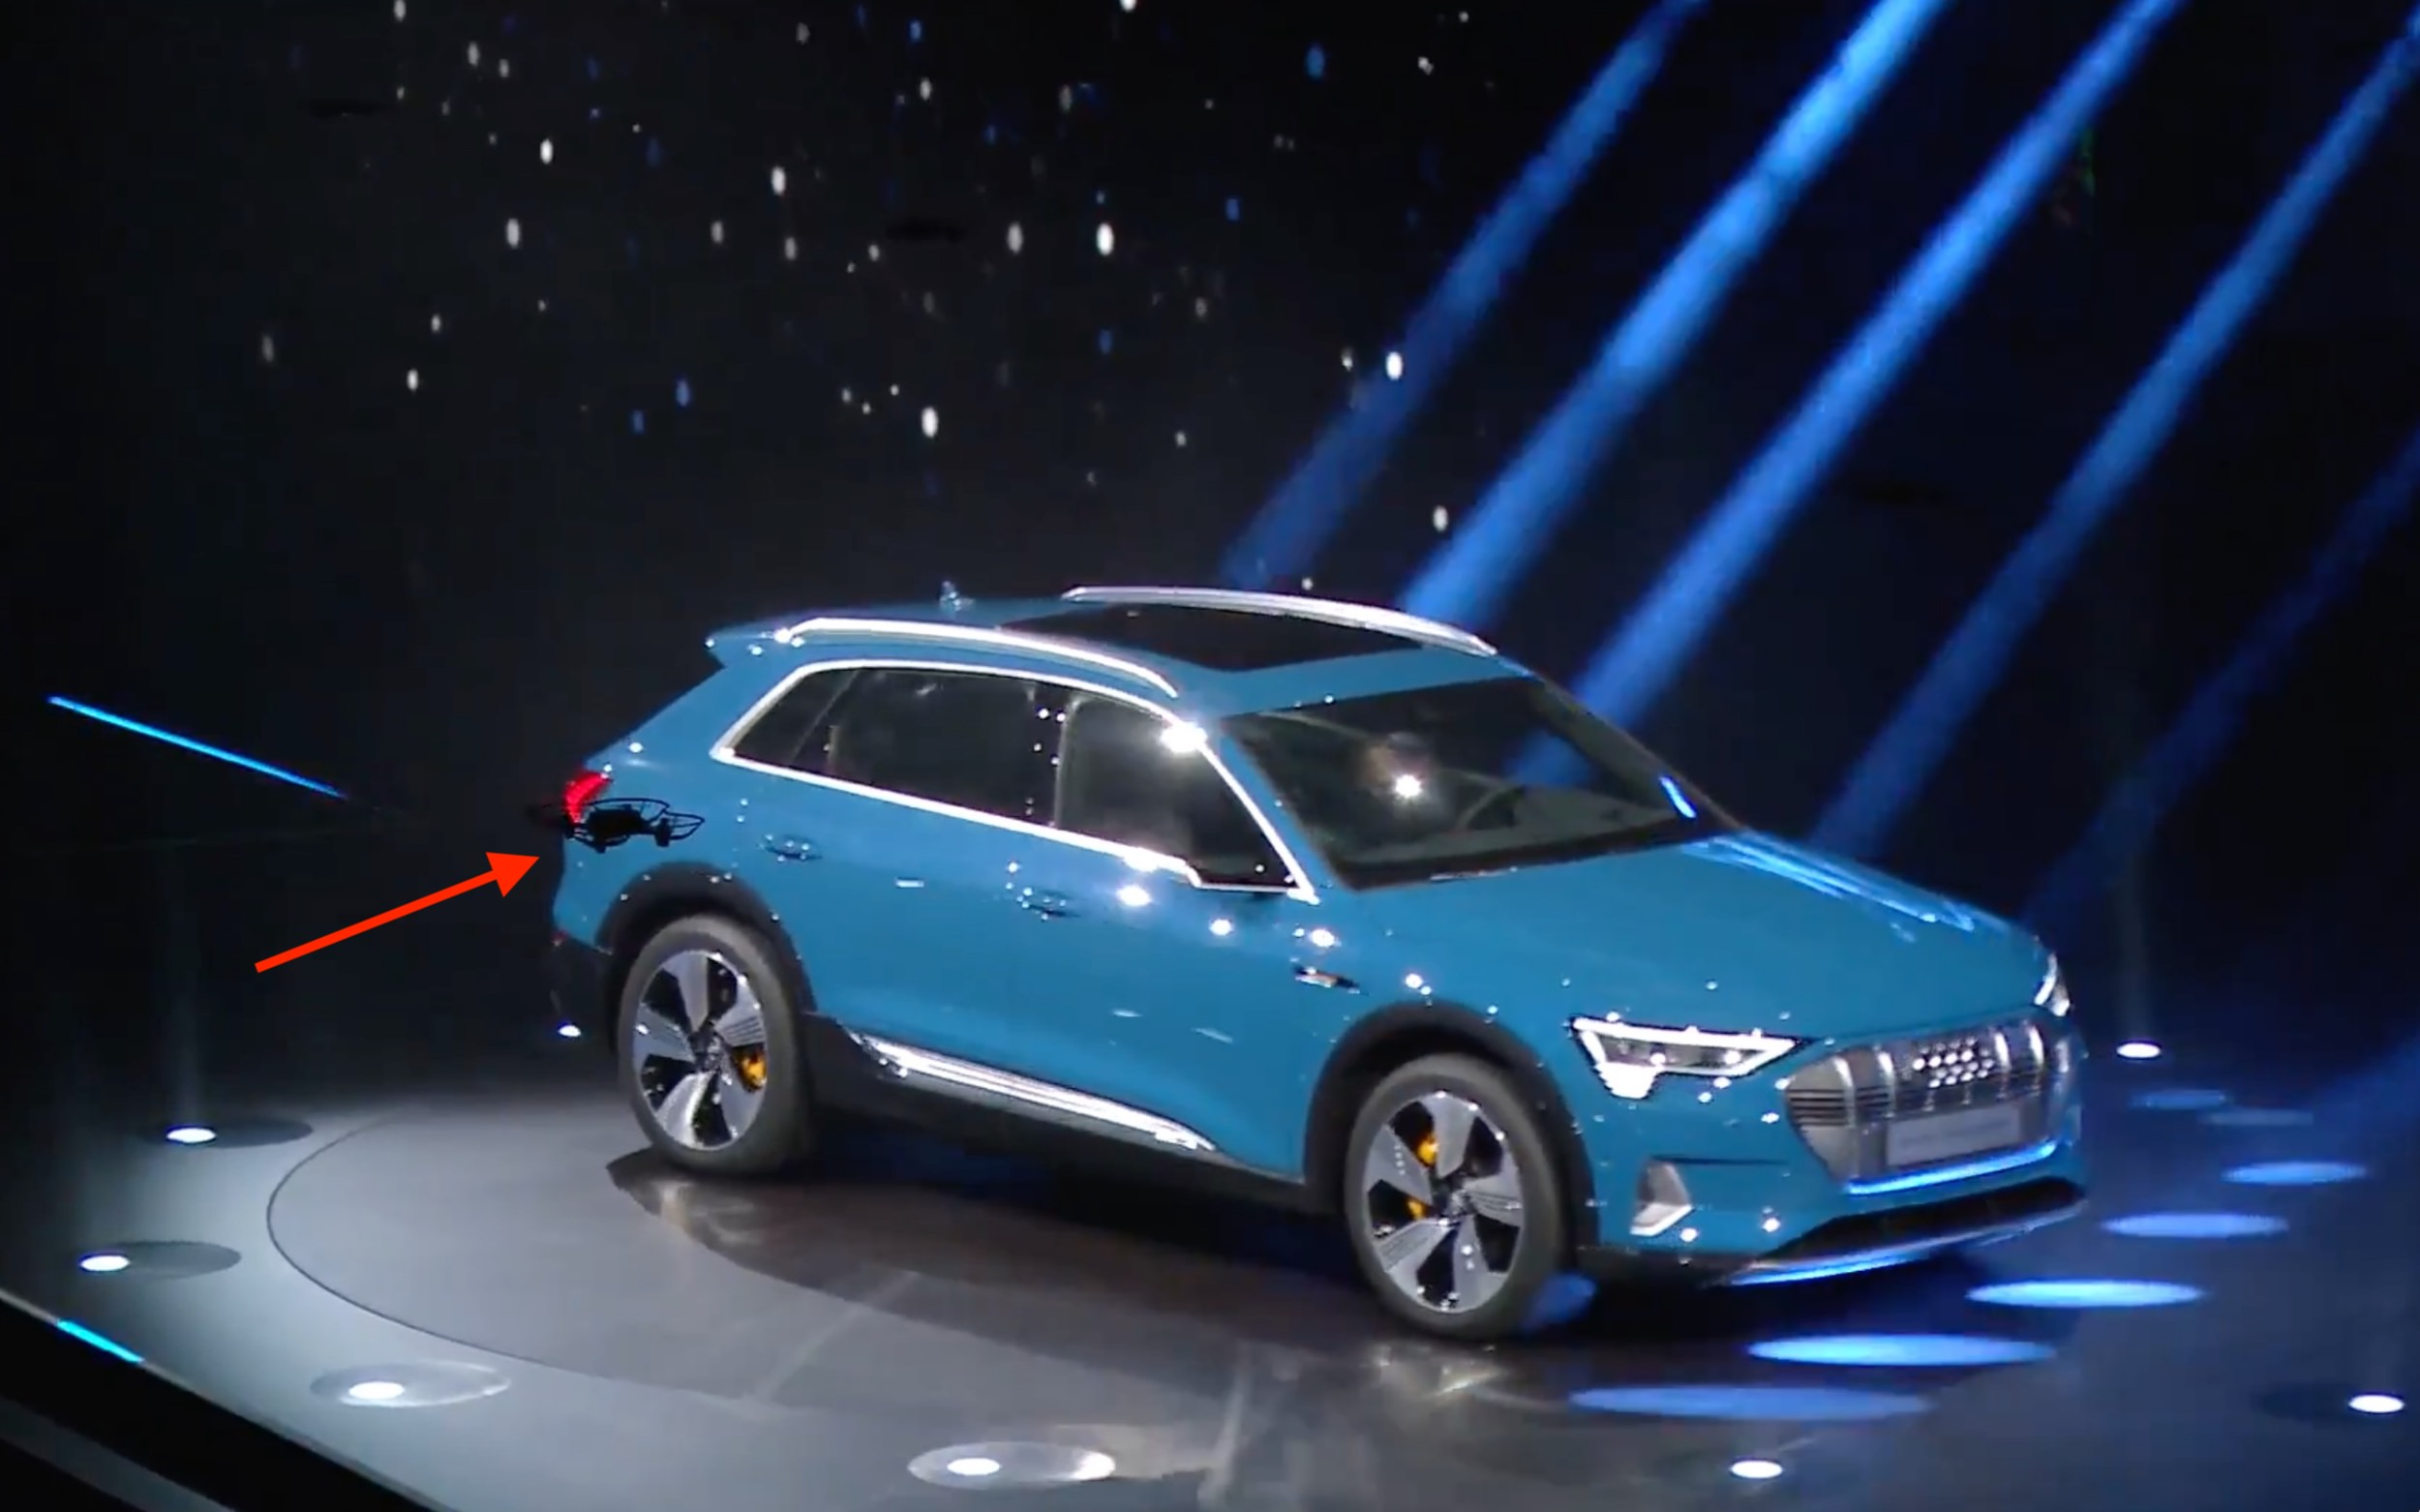 Audi kicks off launch e-tron model with a drone light show